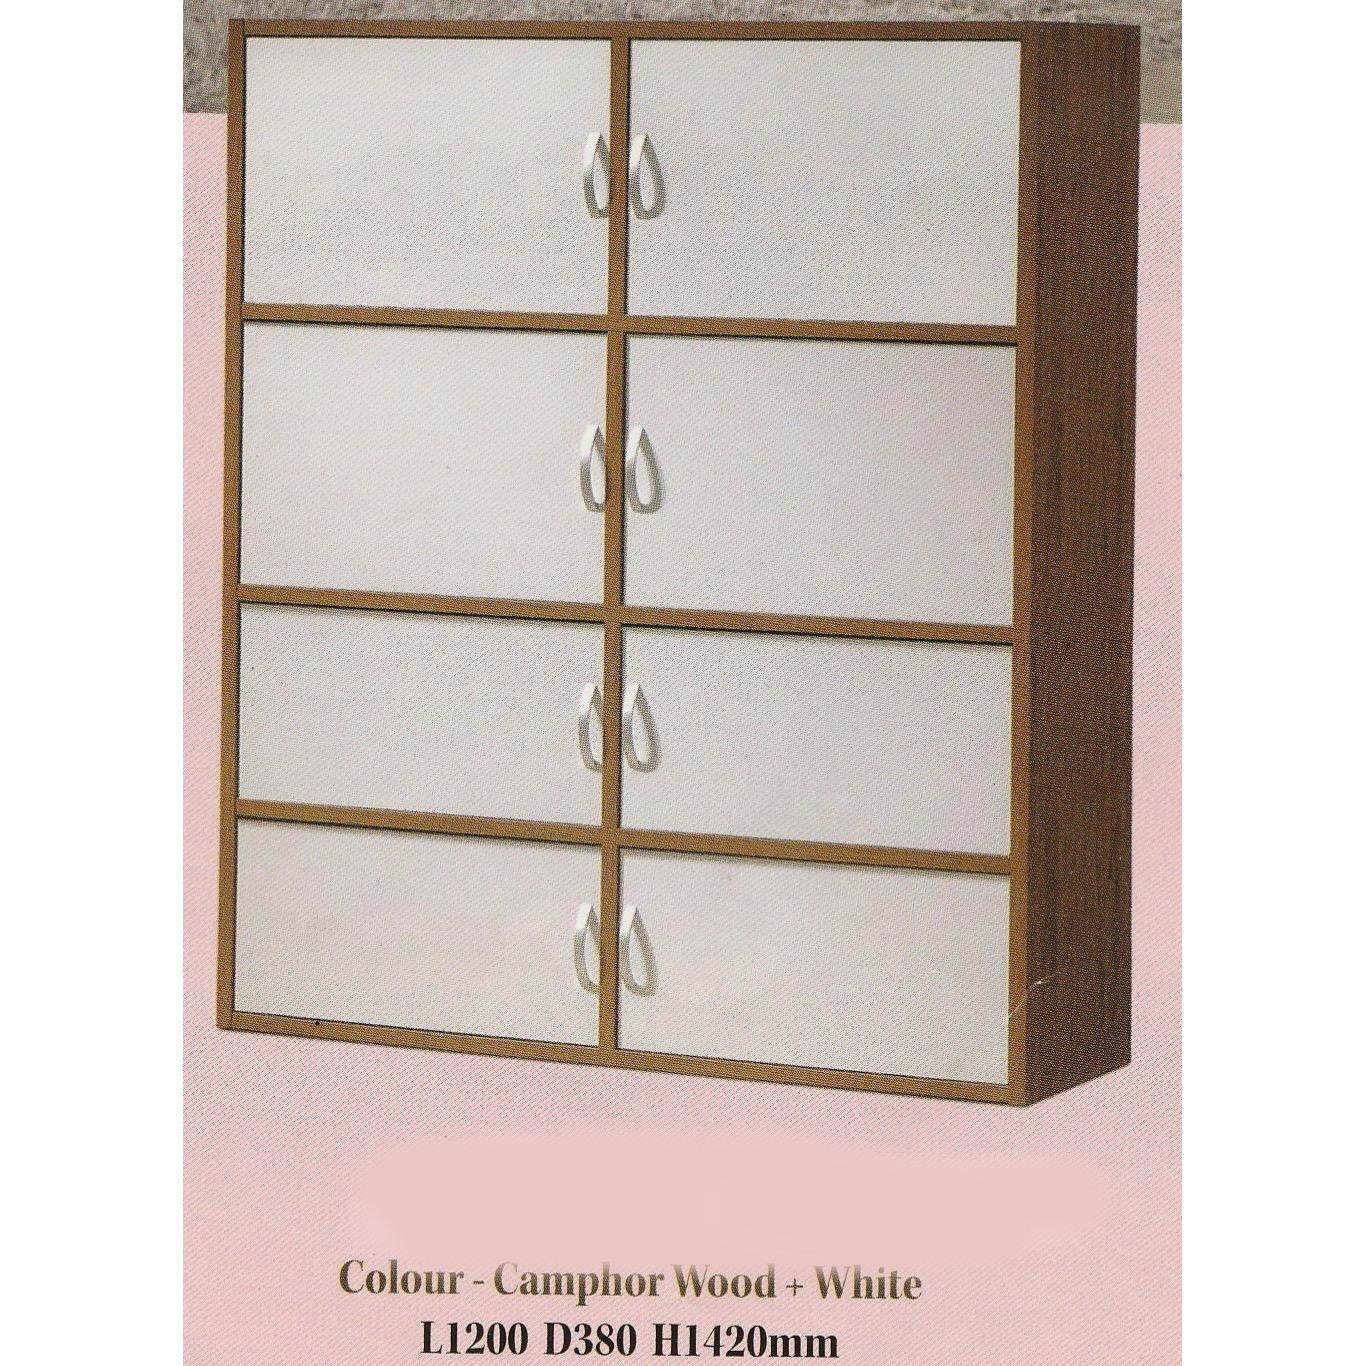 8 Door Solid Book Case Cabinet L1200MM X W380MM X H1420MM (Camphor Wood + White Color) Pre Order 2 Week